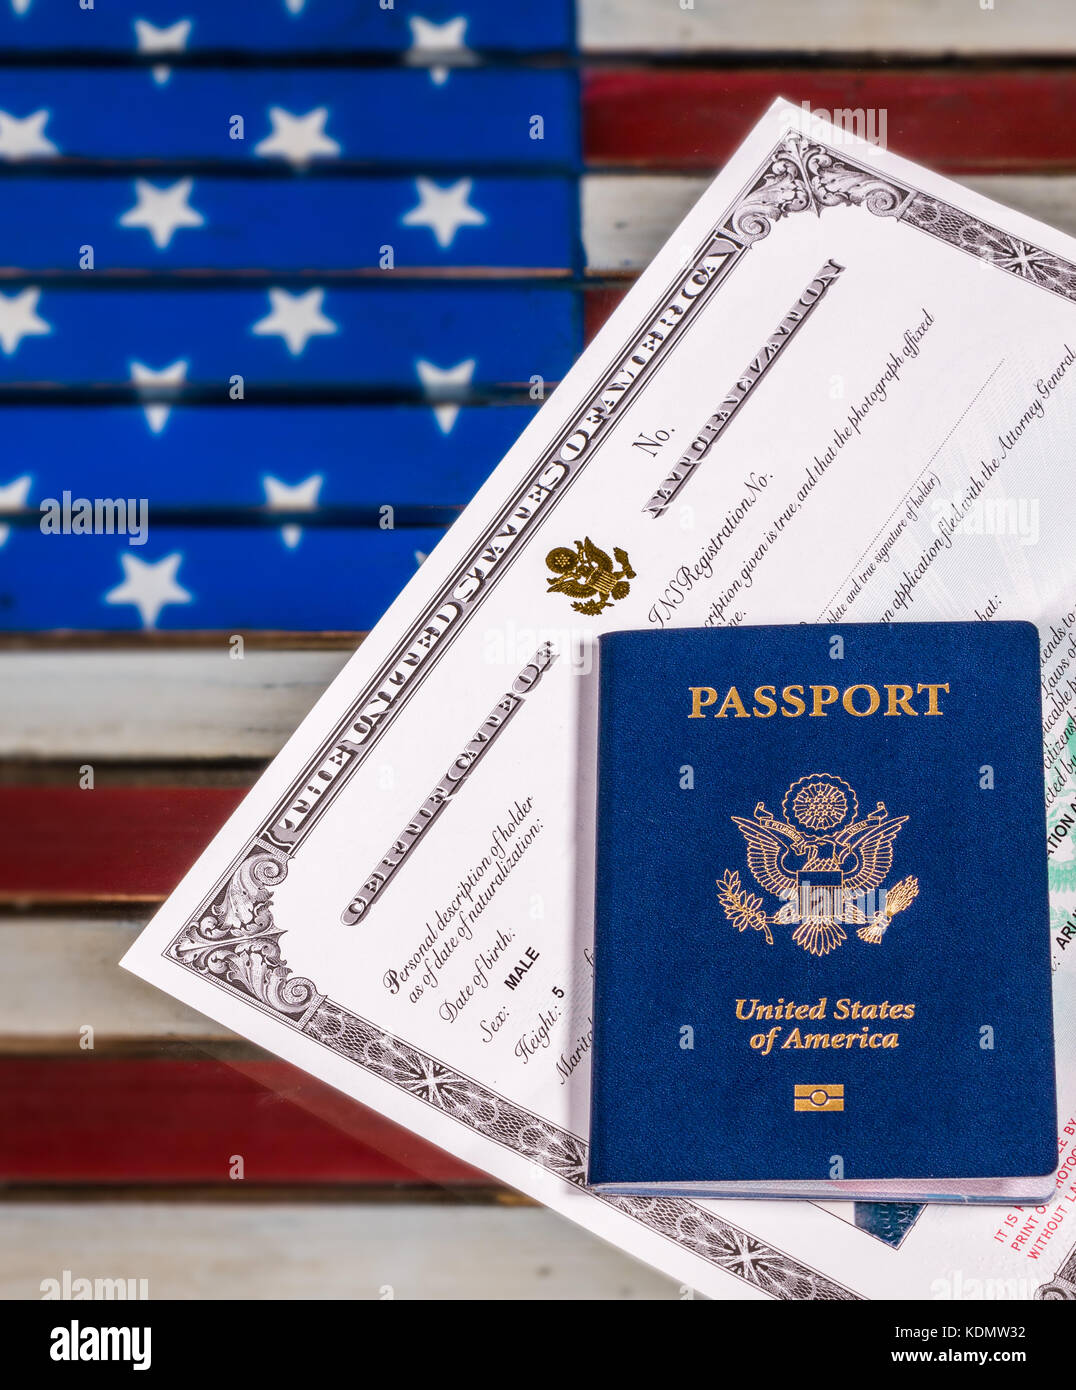 USA passport and naturalization certificate over US Flag - Stock Image